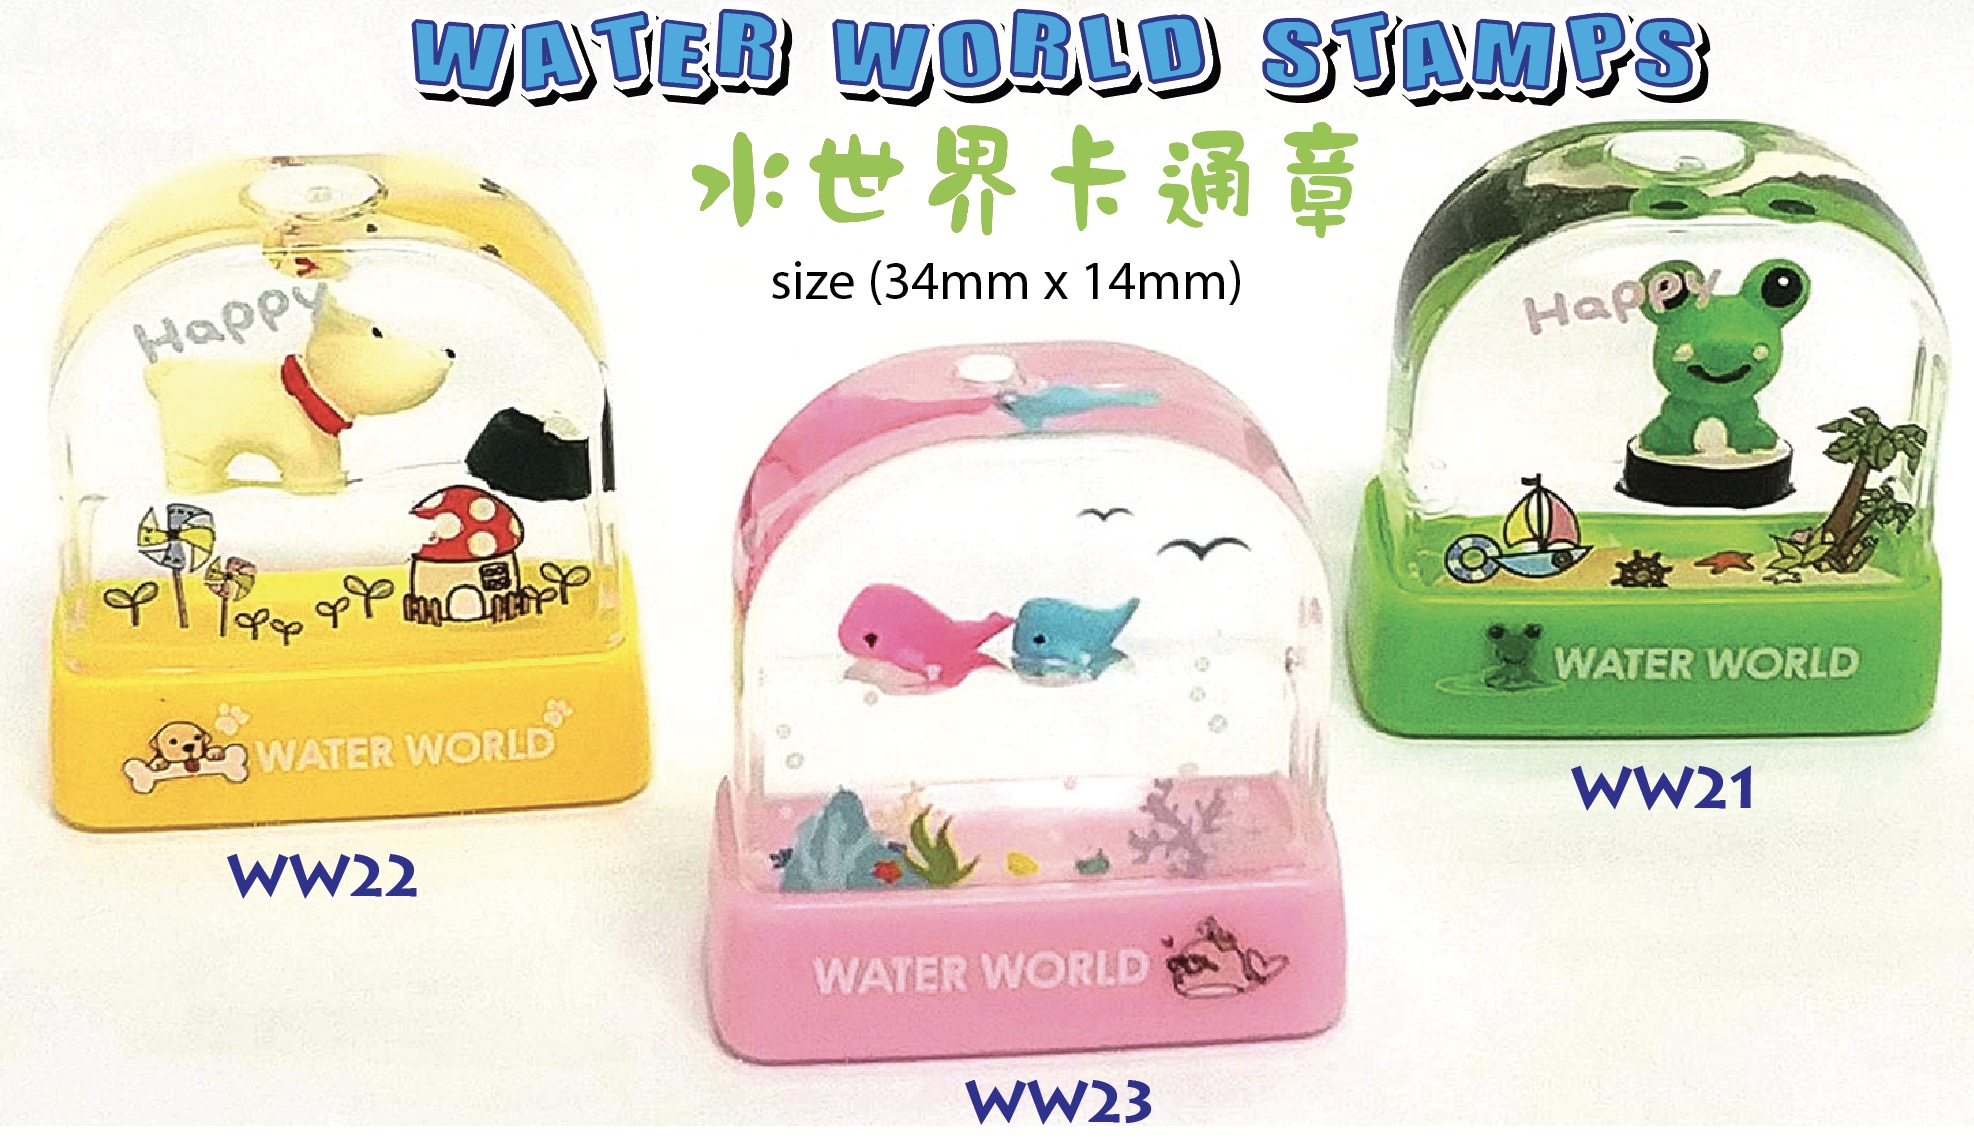 EZ water world stamp